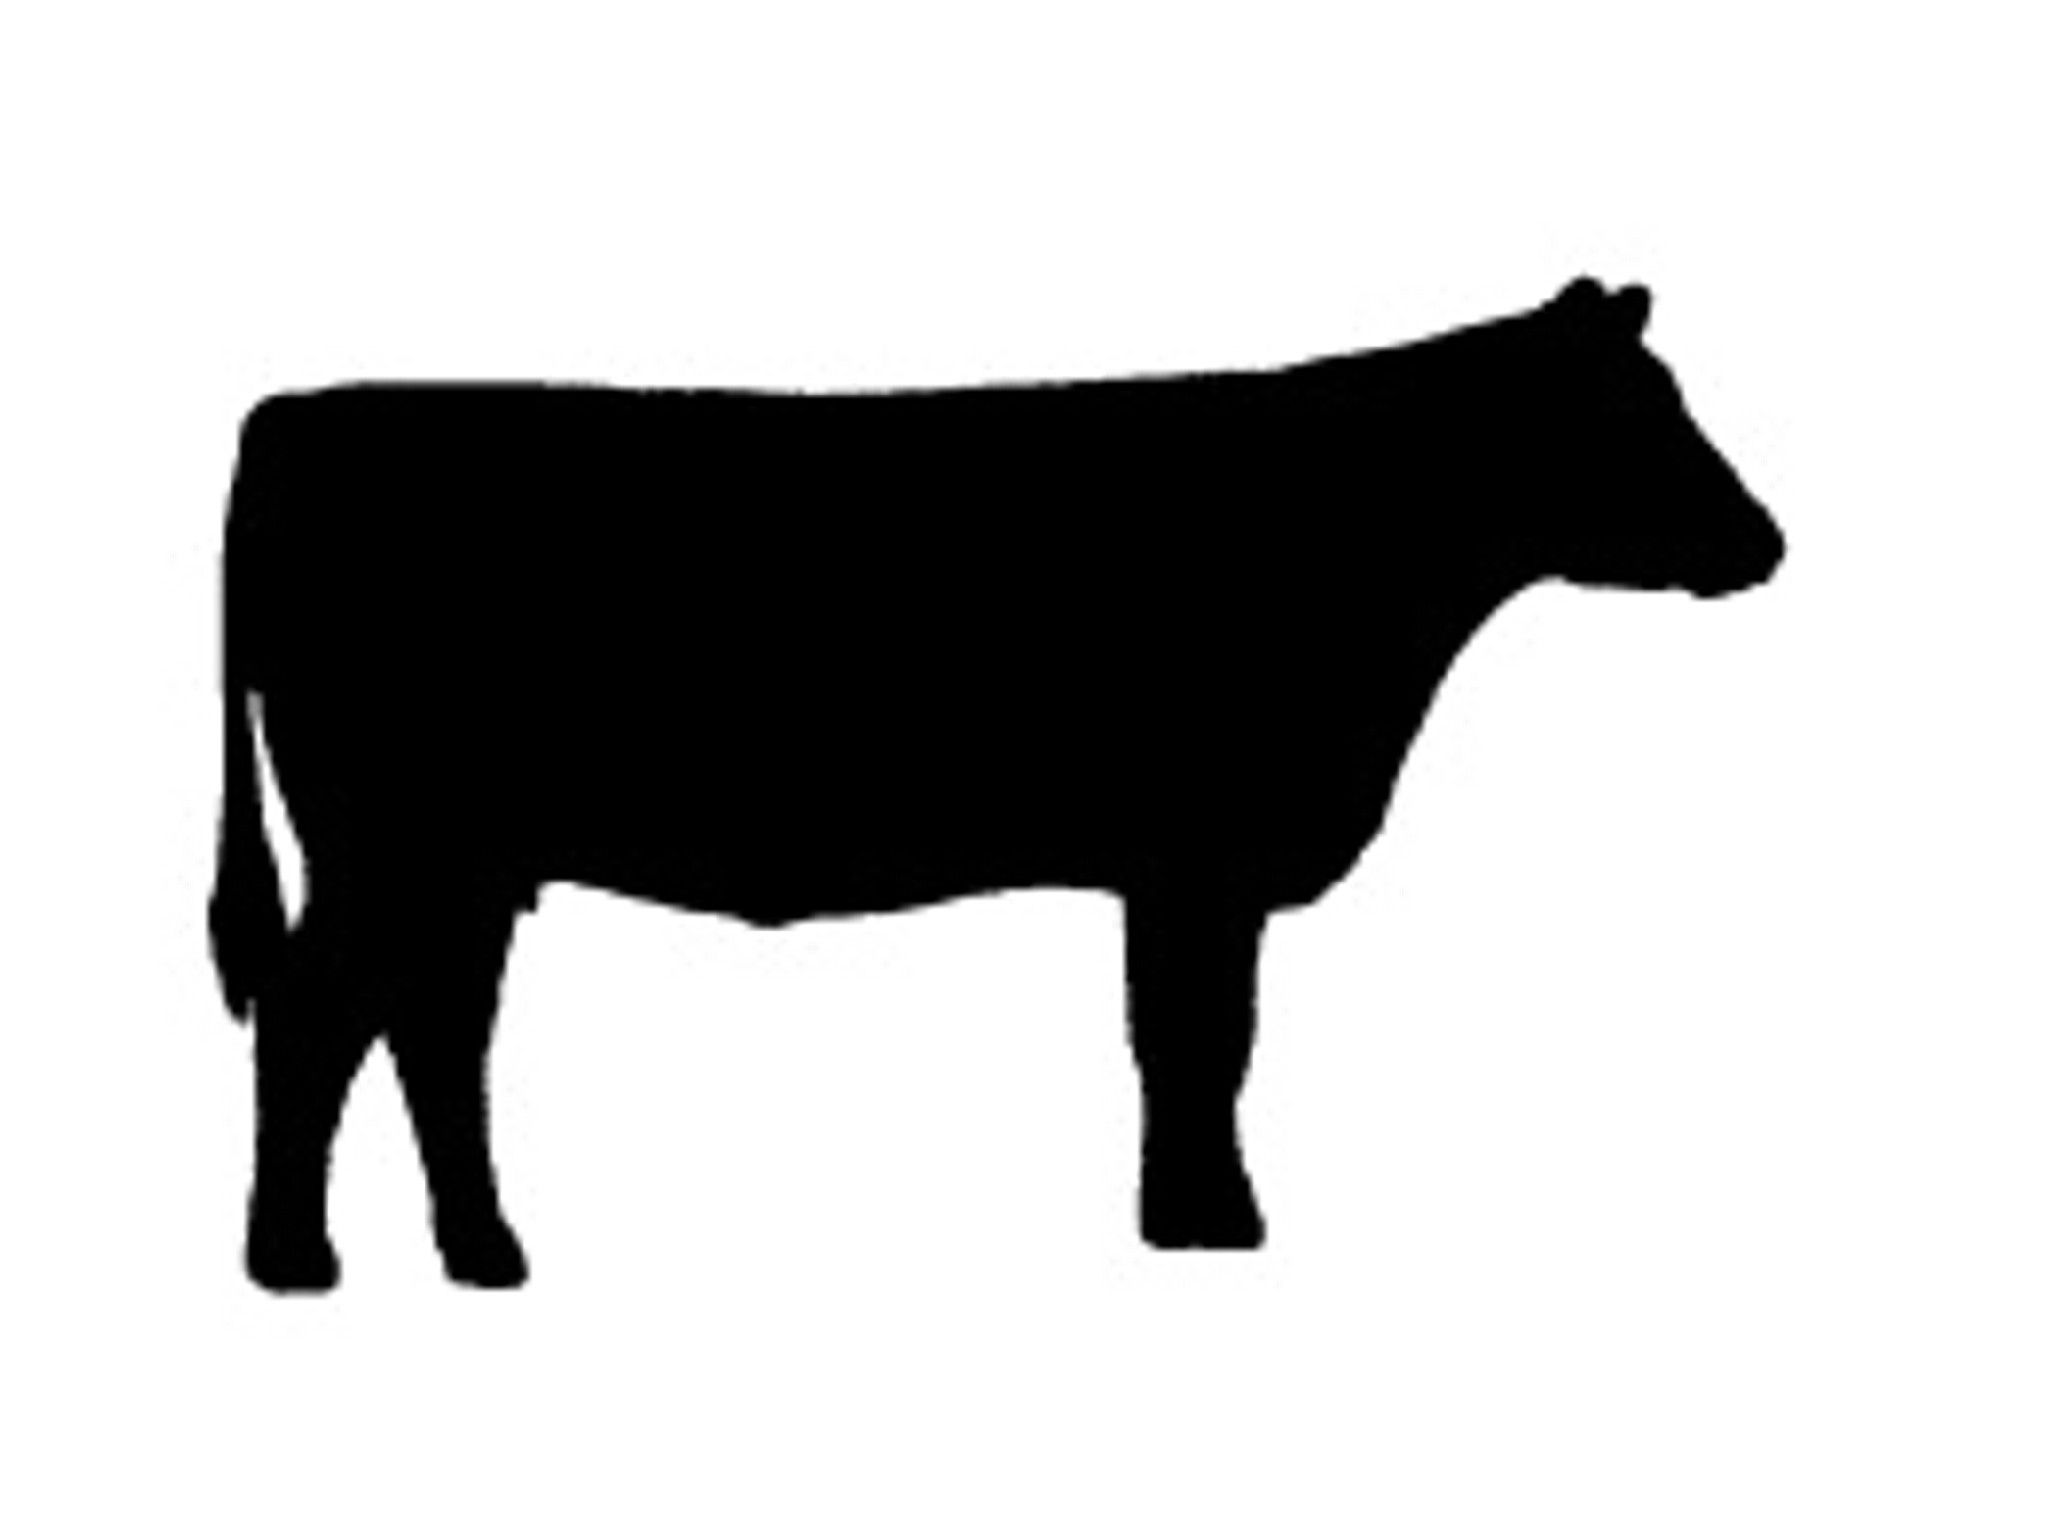 dairy cow silhouette at getdrawings com free for personal use rh getdrawings com dairy cattle clipart dairy cow silhouette clipart